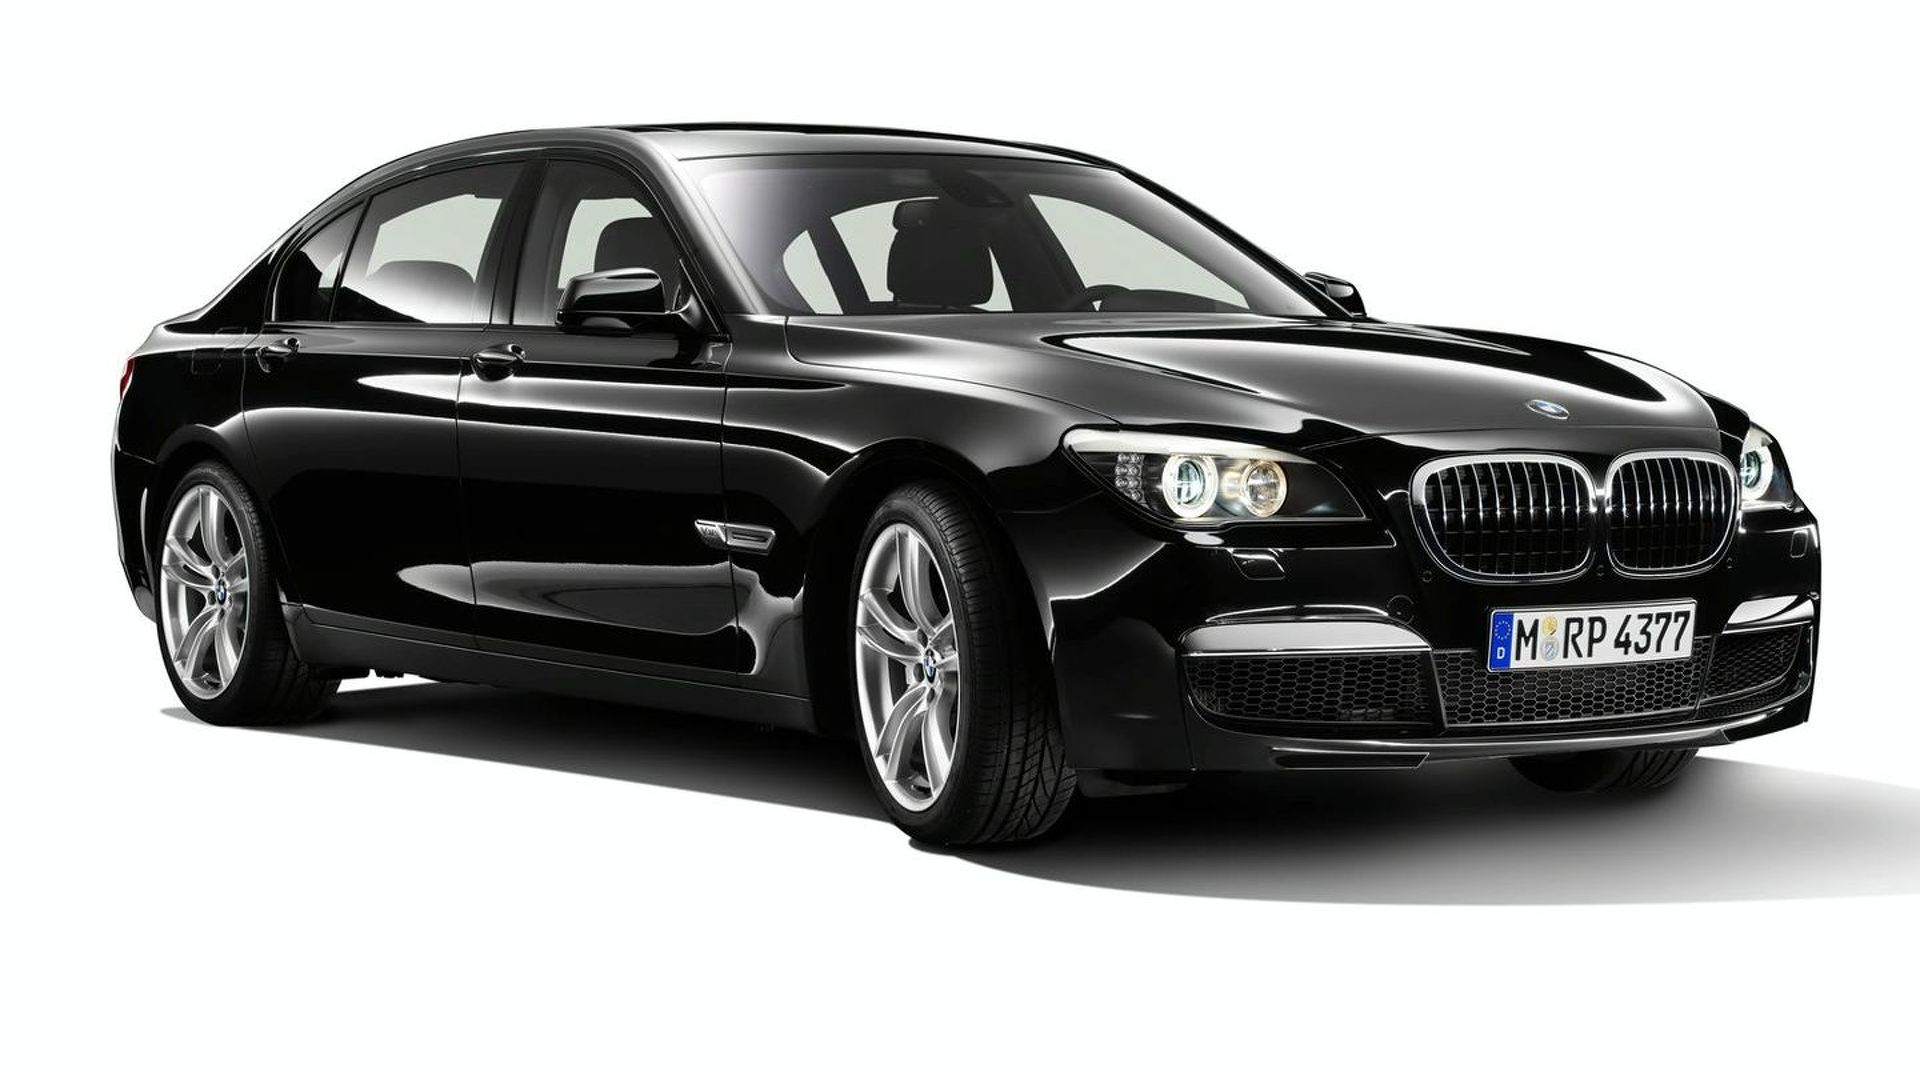 official 2010 bmw 7 series gets xdrive m sports package twin turbo diesel engine. Black Bedroom Furniture Sets. Home Design Ideas